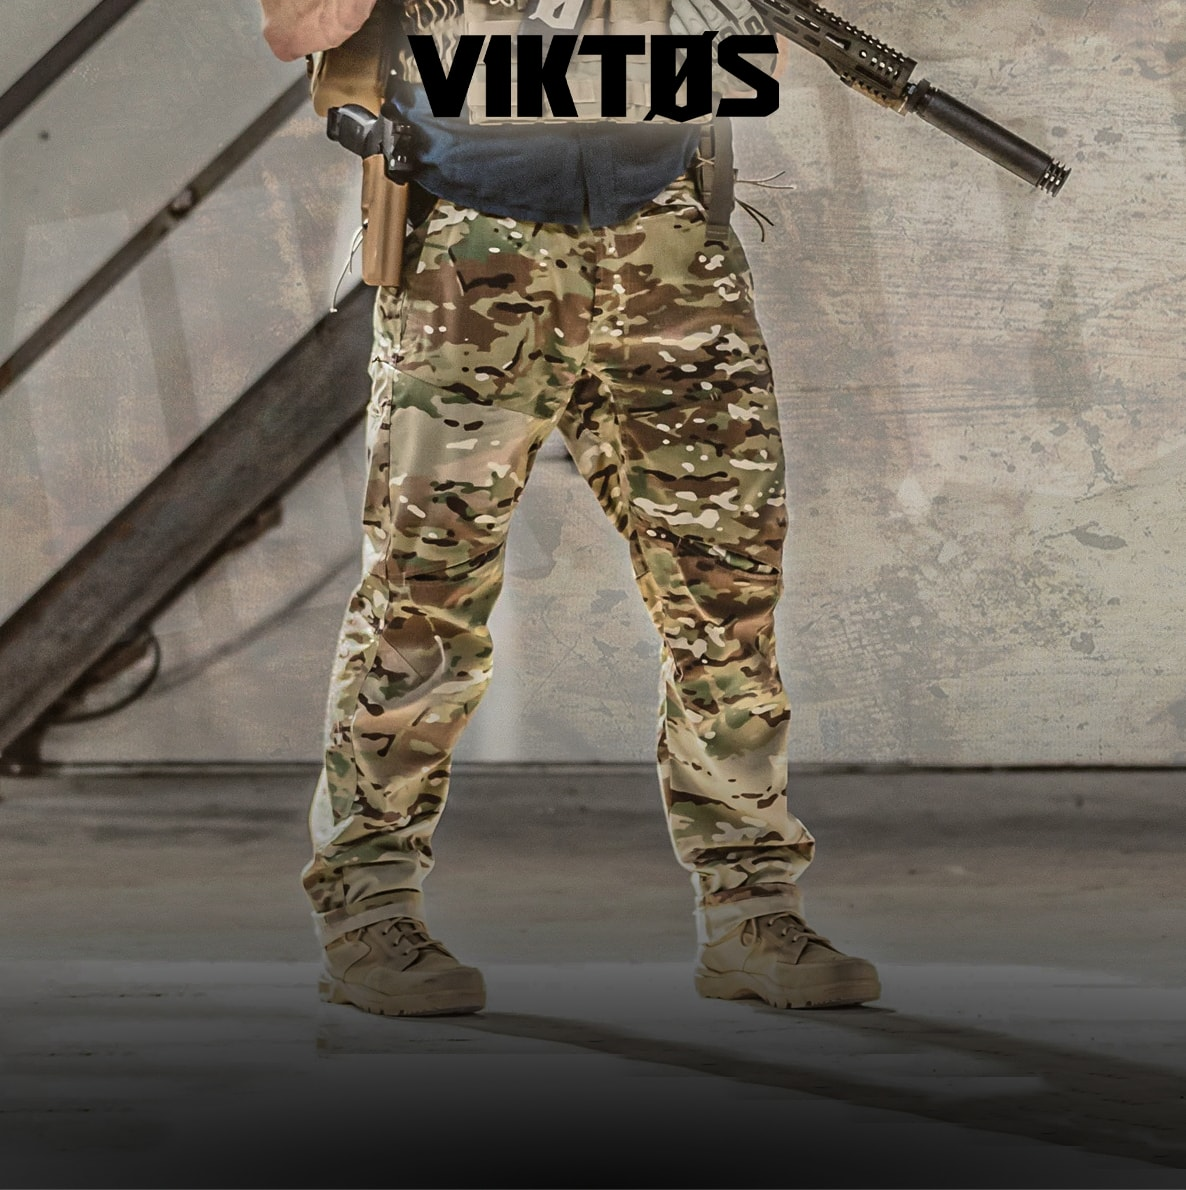 Viktos Now Available at USPatriot.com